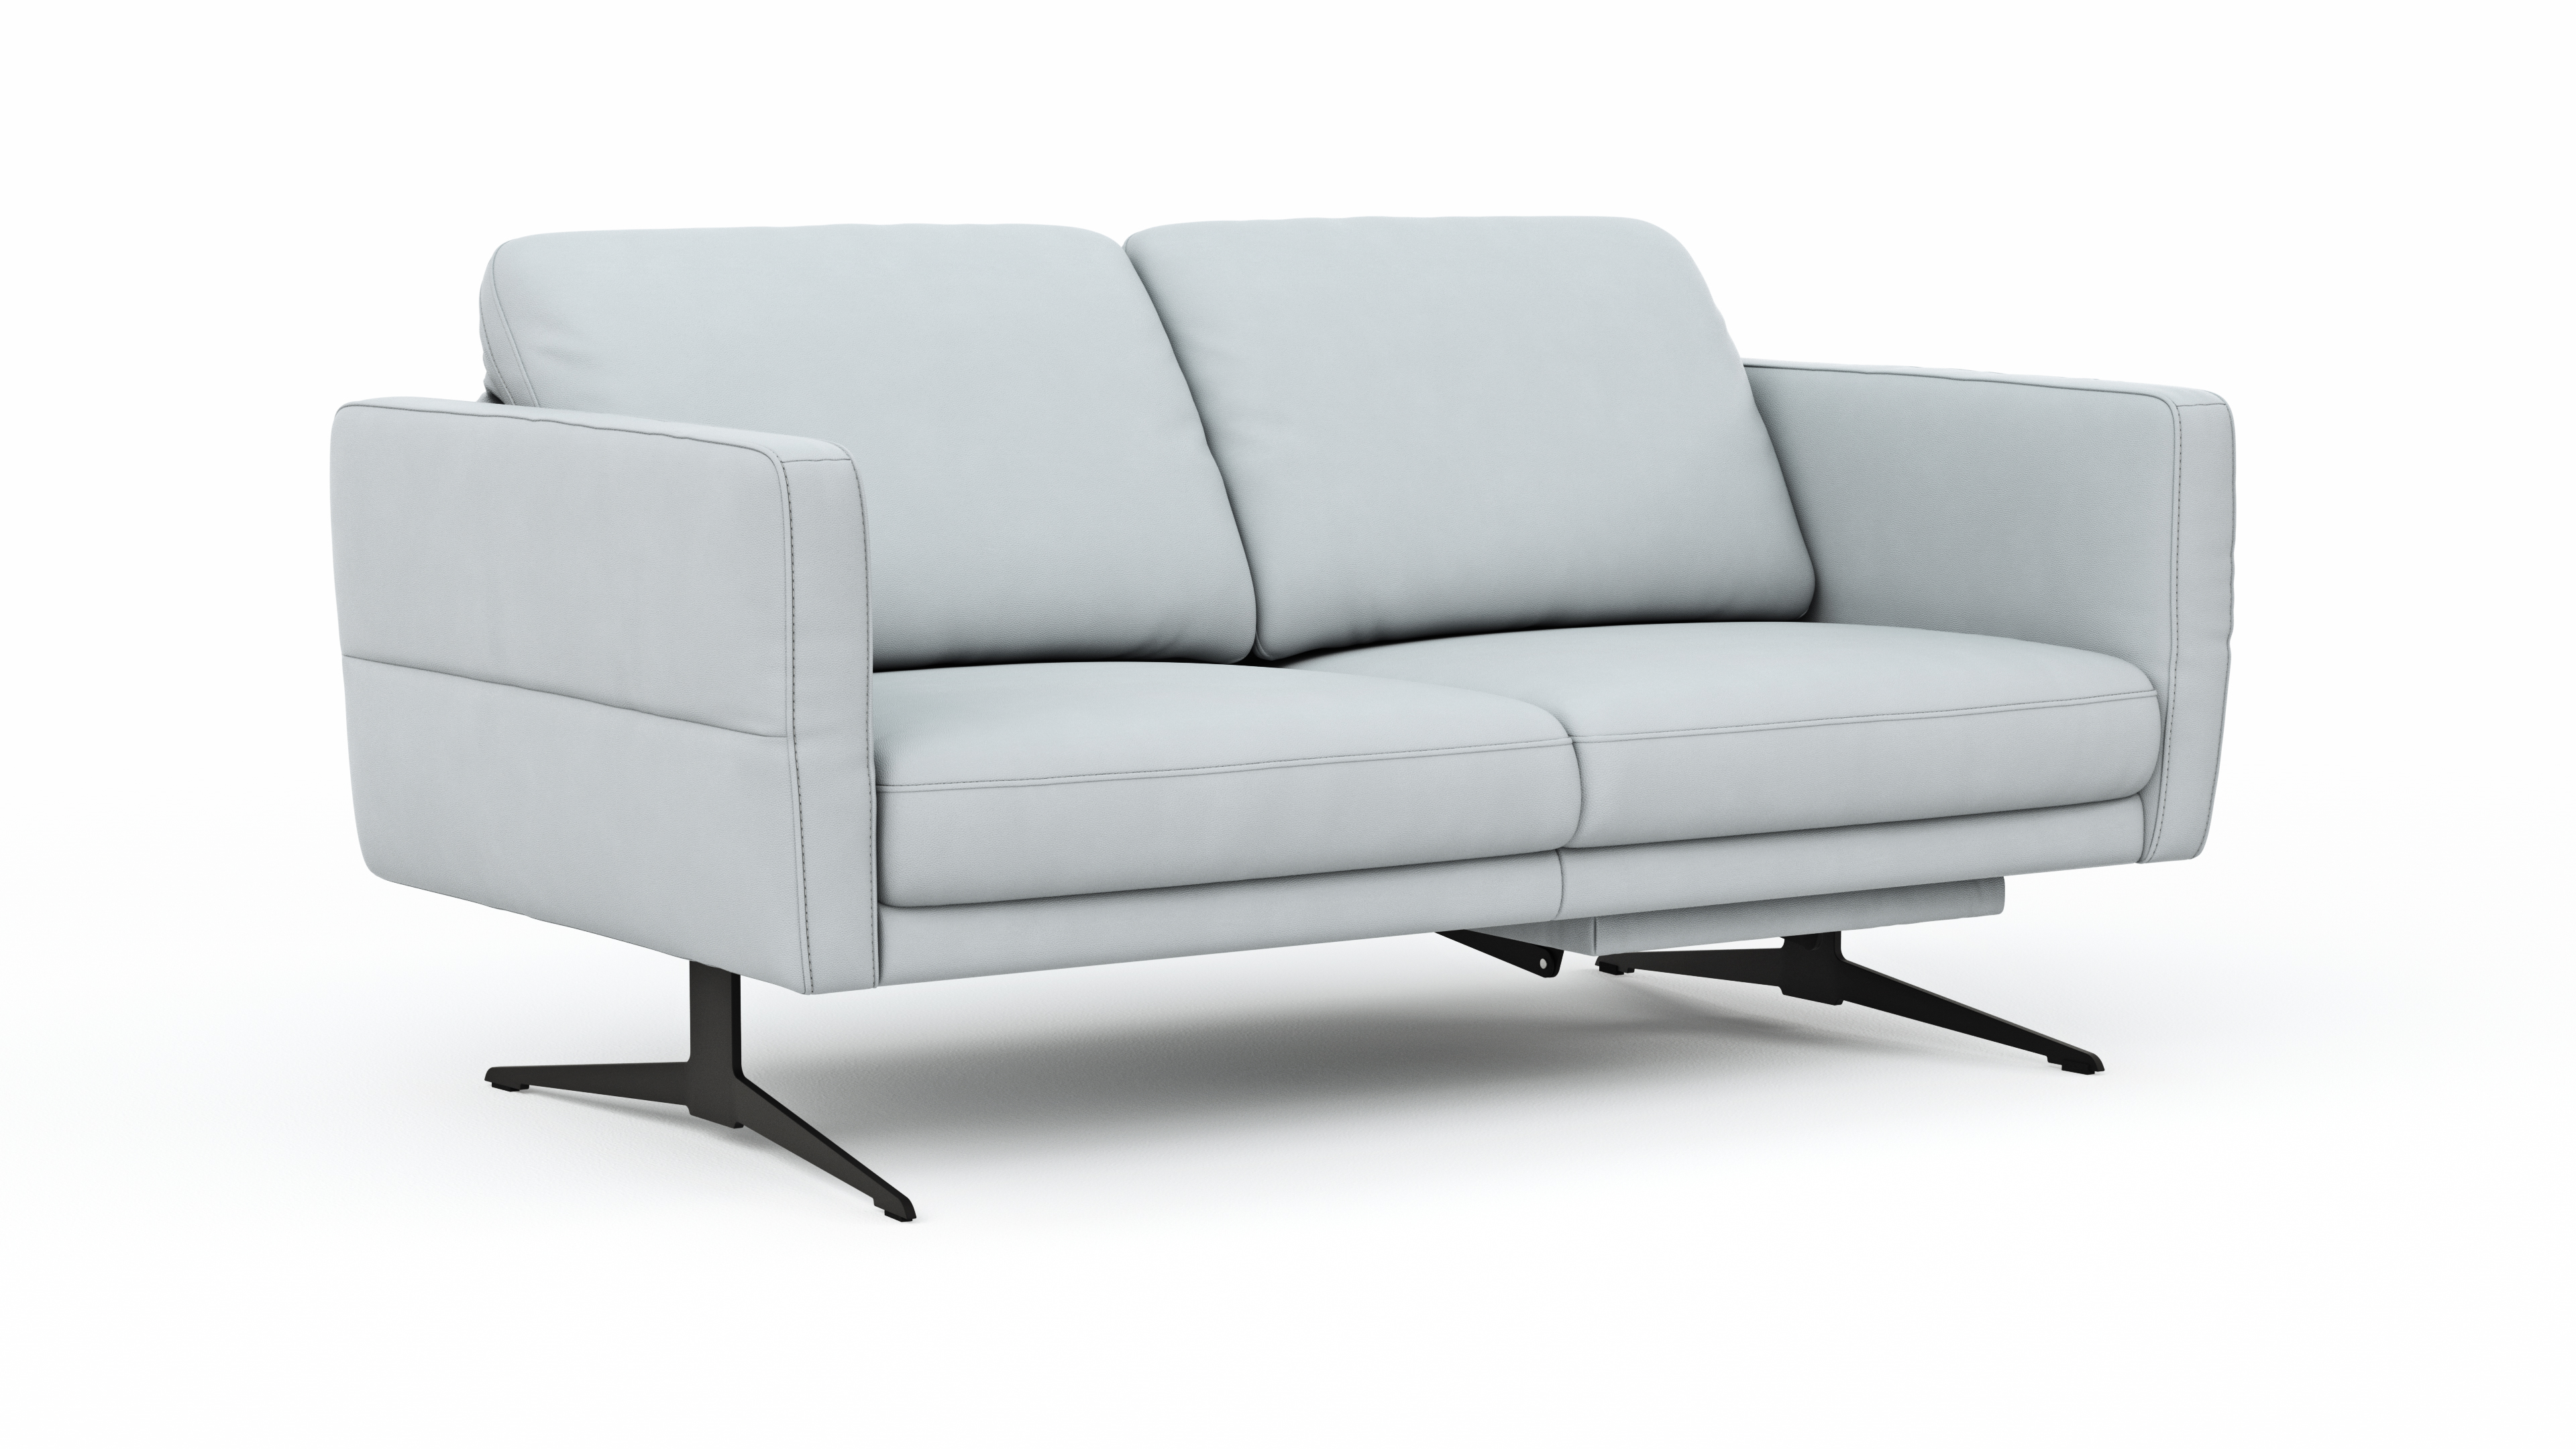 Global Select Sofa Estrela freisteller 2 104187 | Homepoet